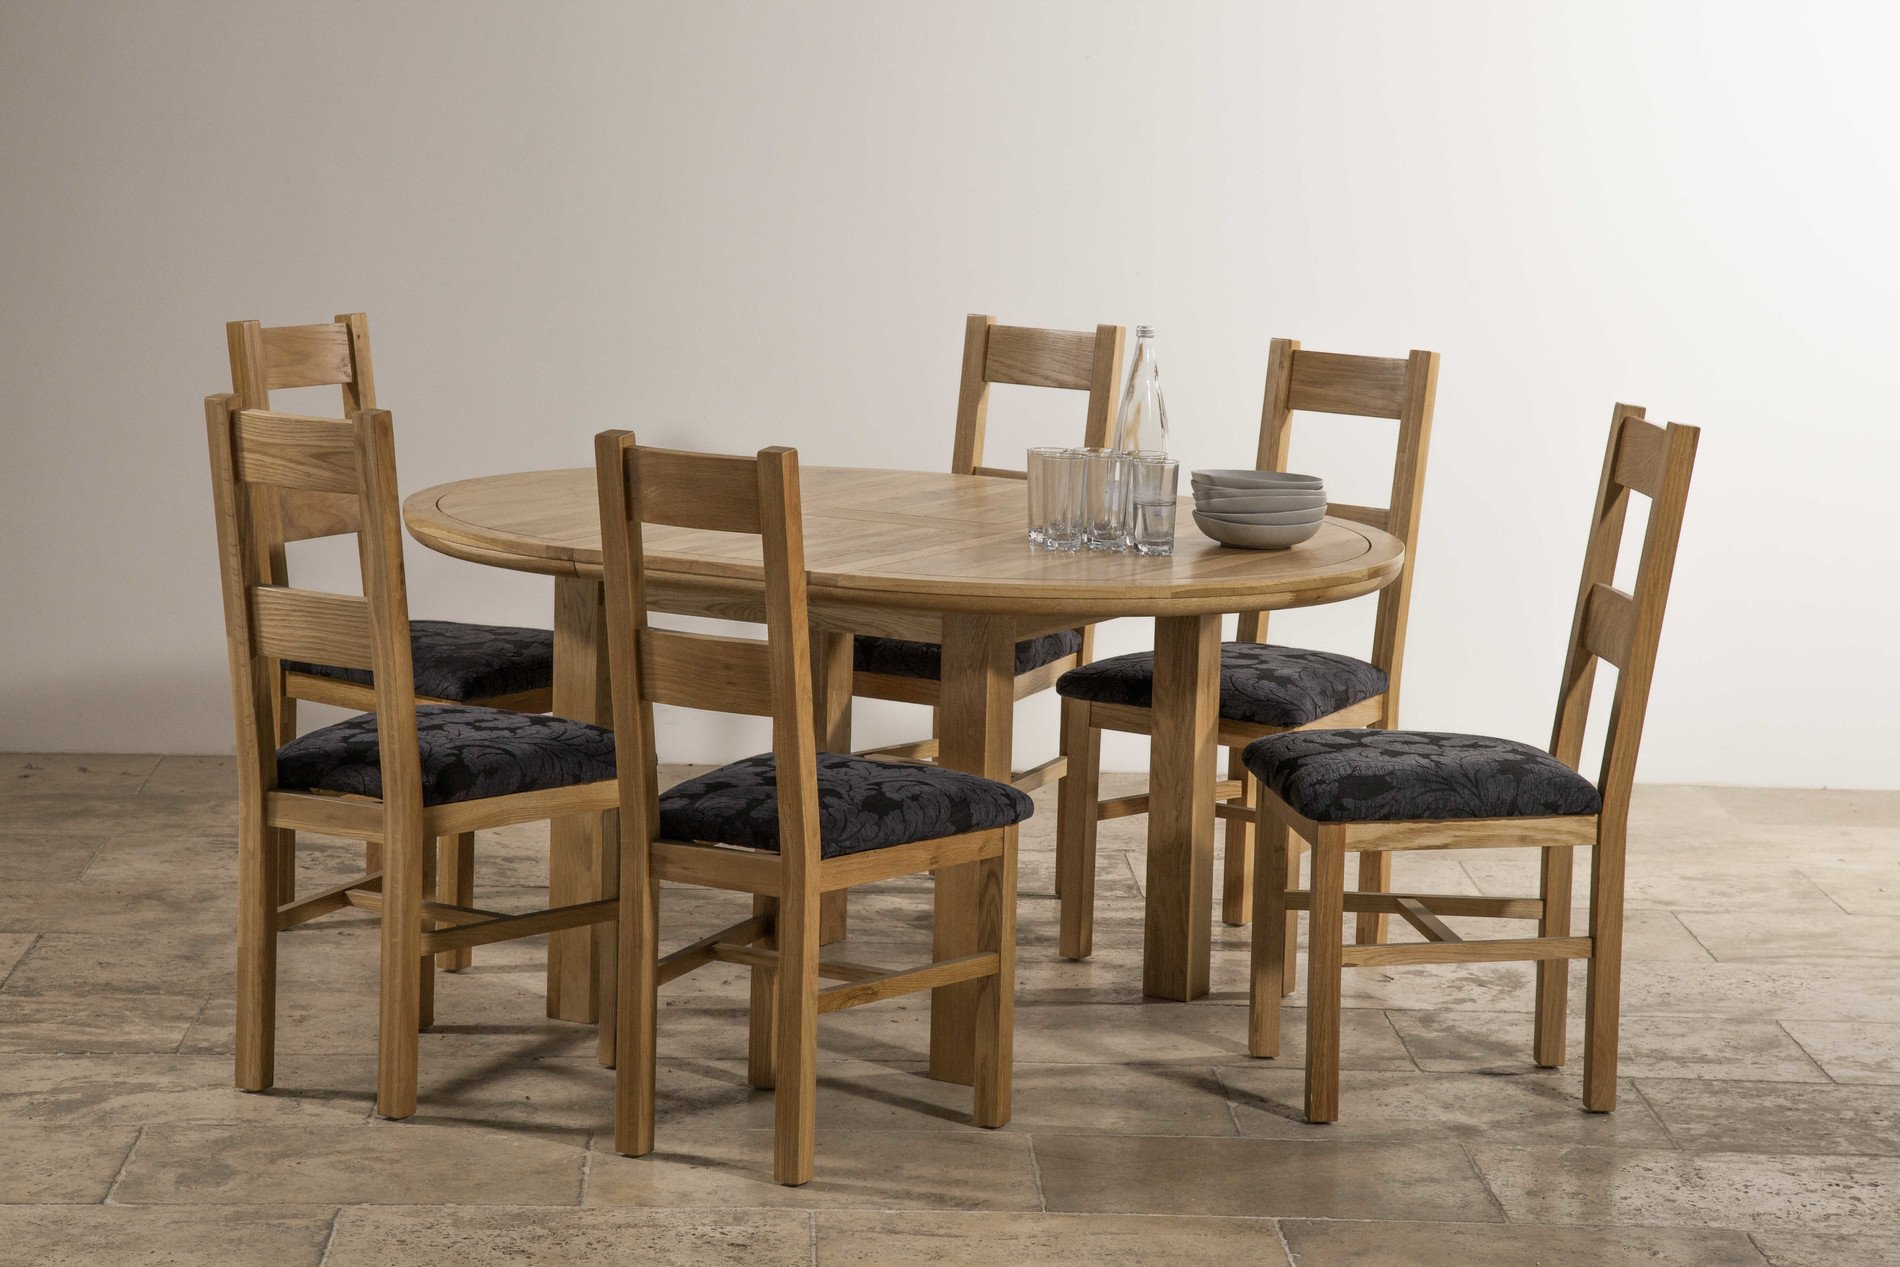 5ft 3 solid oak round extending dining table 6 for 6 foot round dining table